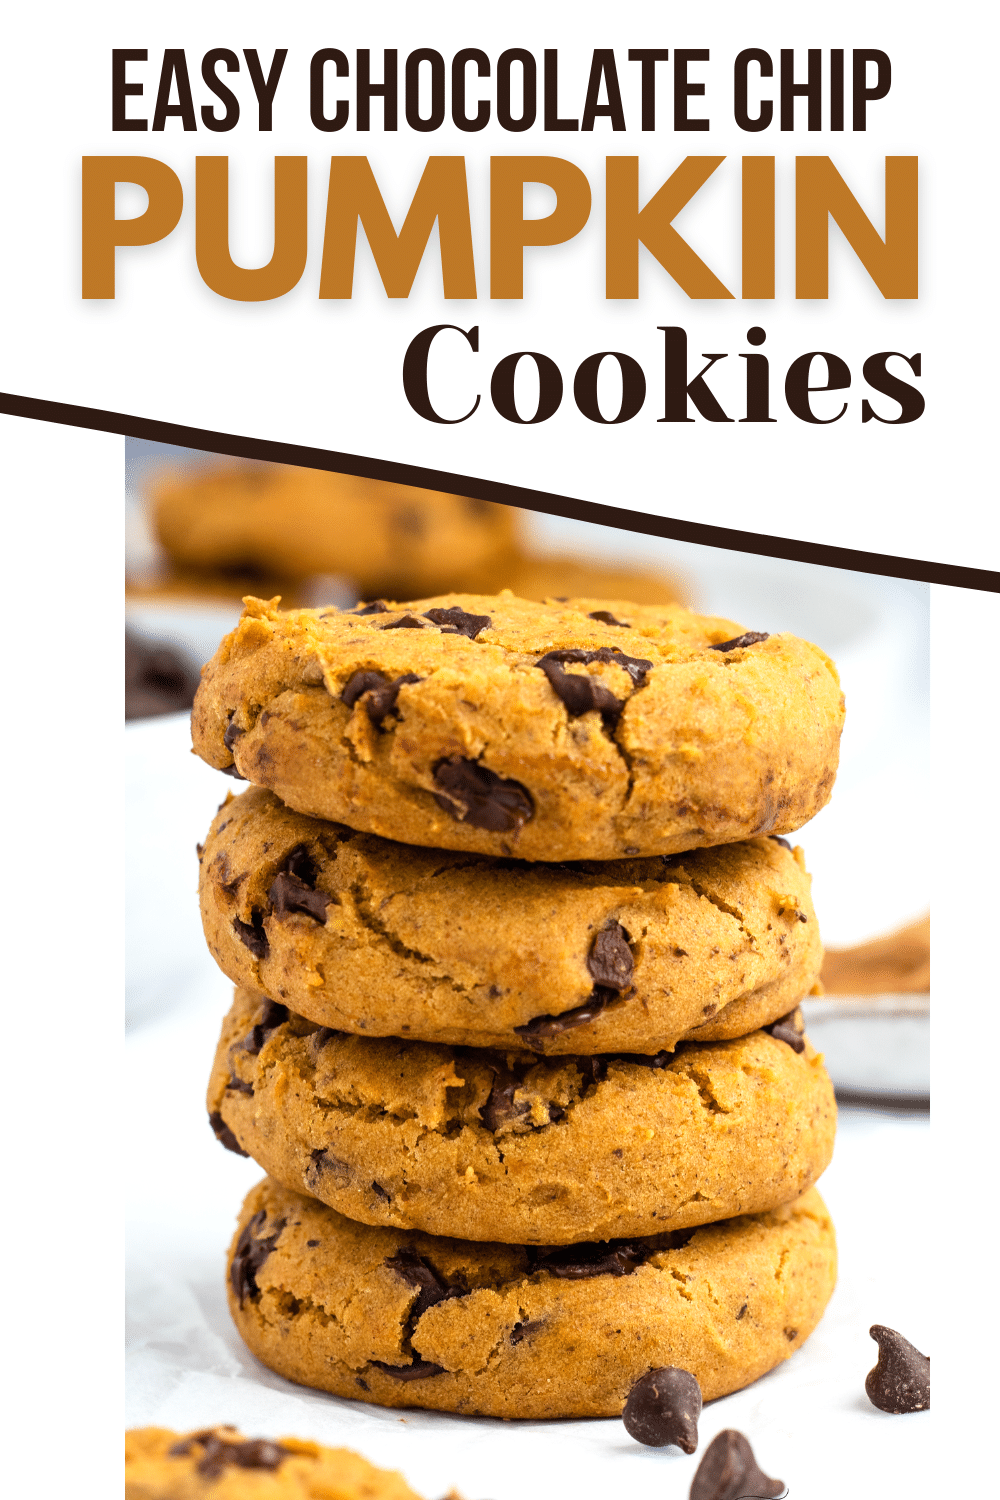 Vegan Pumpkin Chocolate Chip Cookies are the soft and chewy fall cookie of your dreams! These gluten-free cookies are so easy to make with no fancy ingredients required.